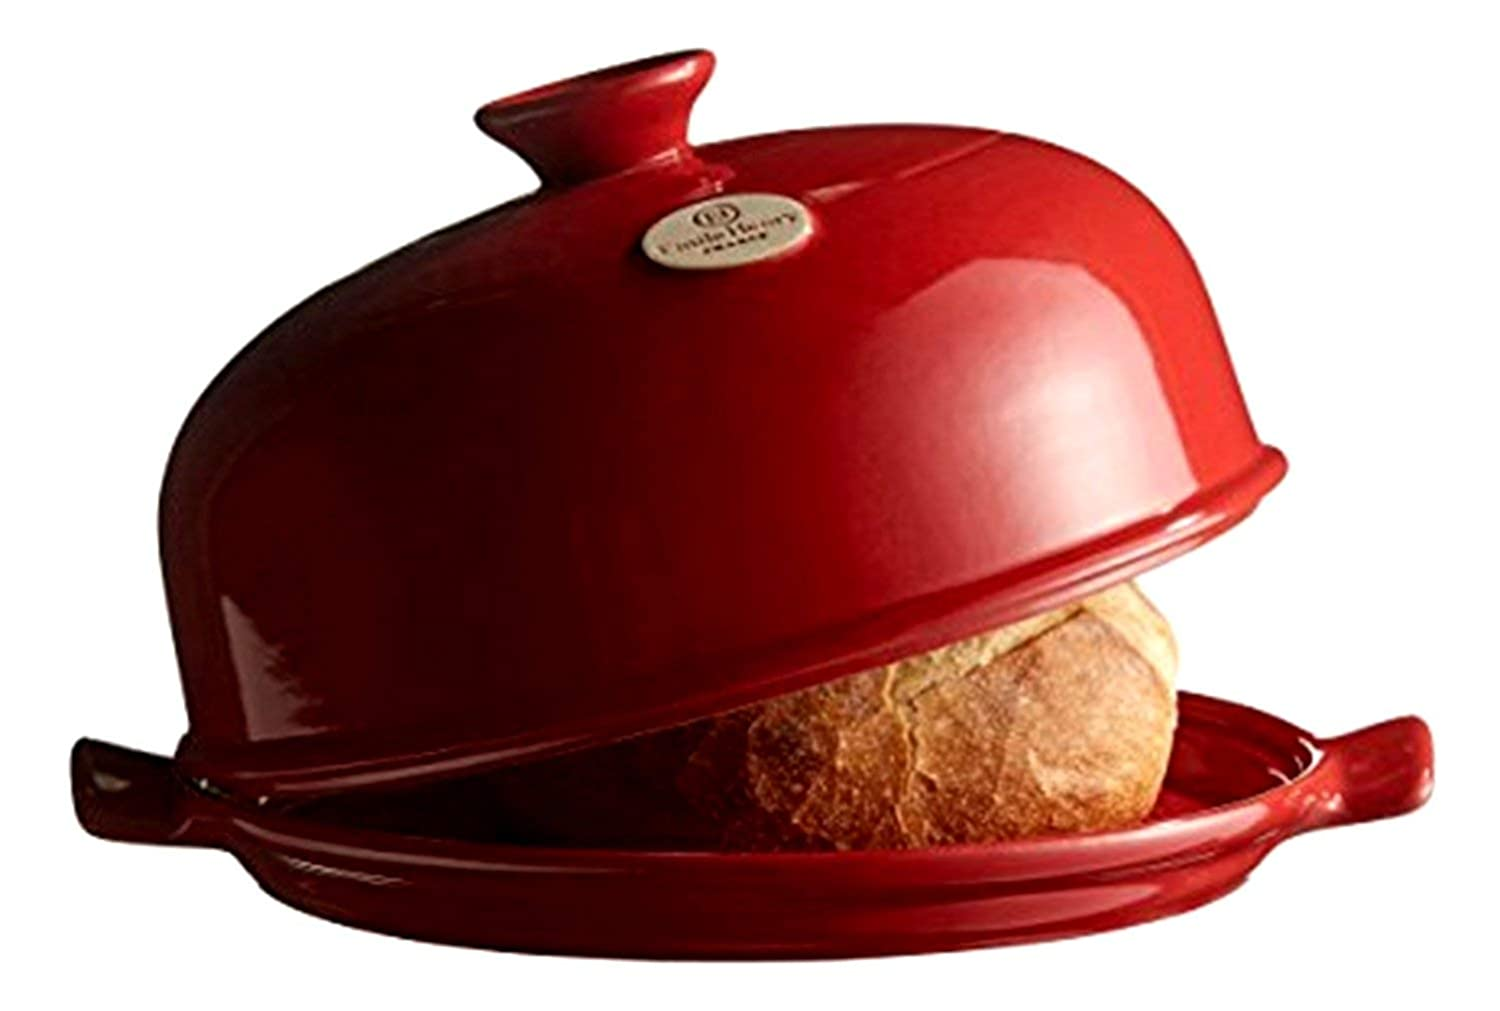 Emile Henry Mould Bread Box Red Flame